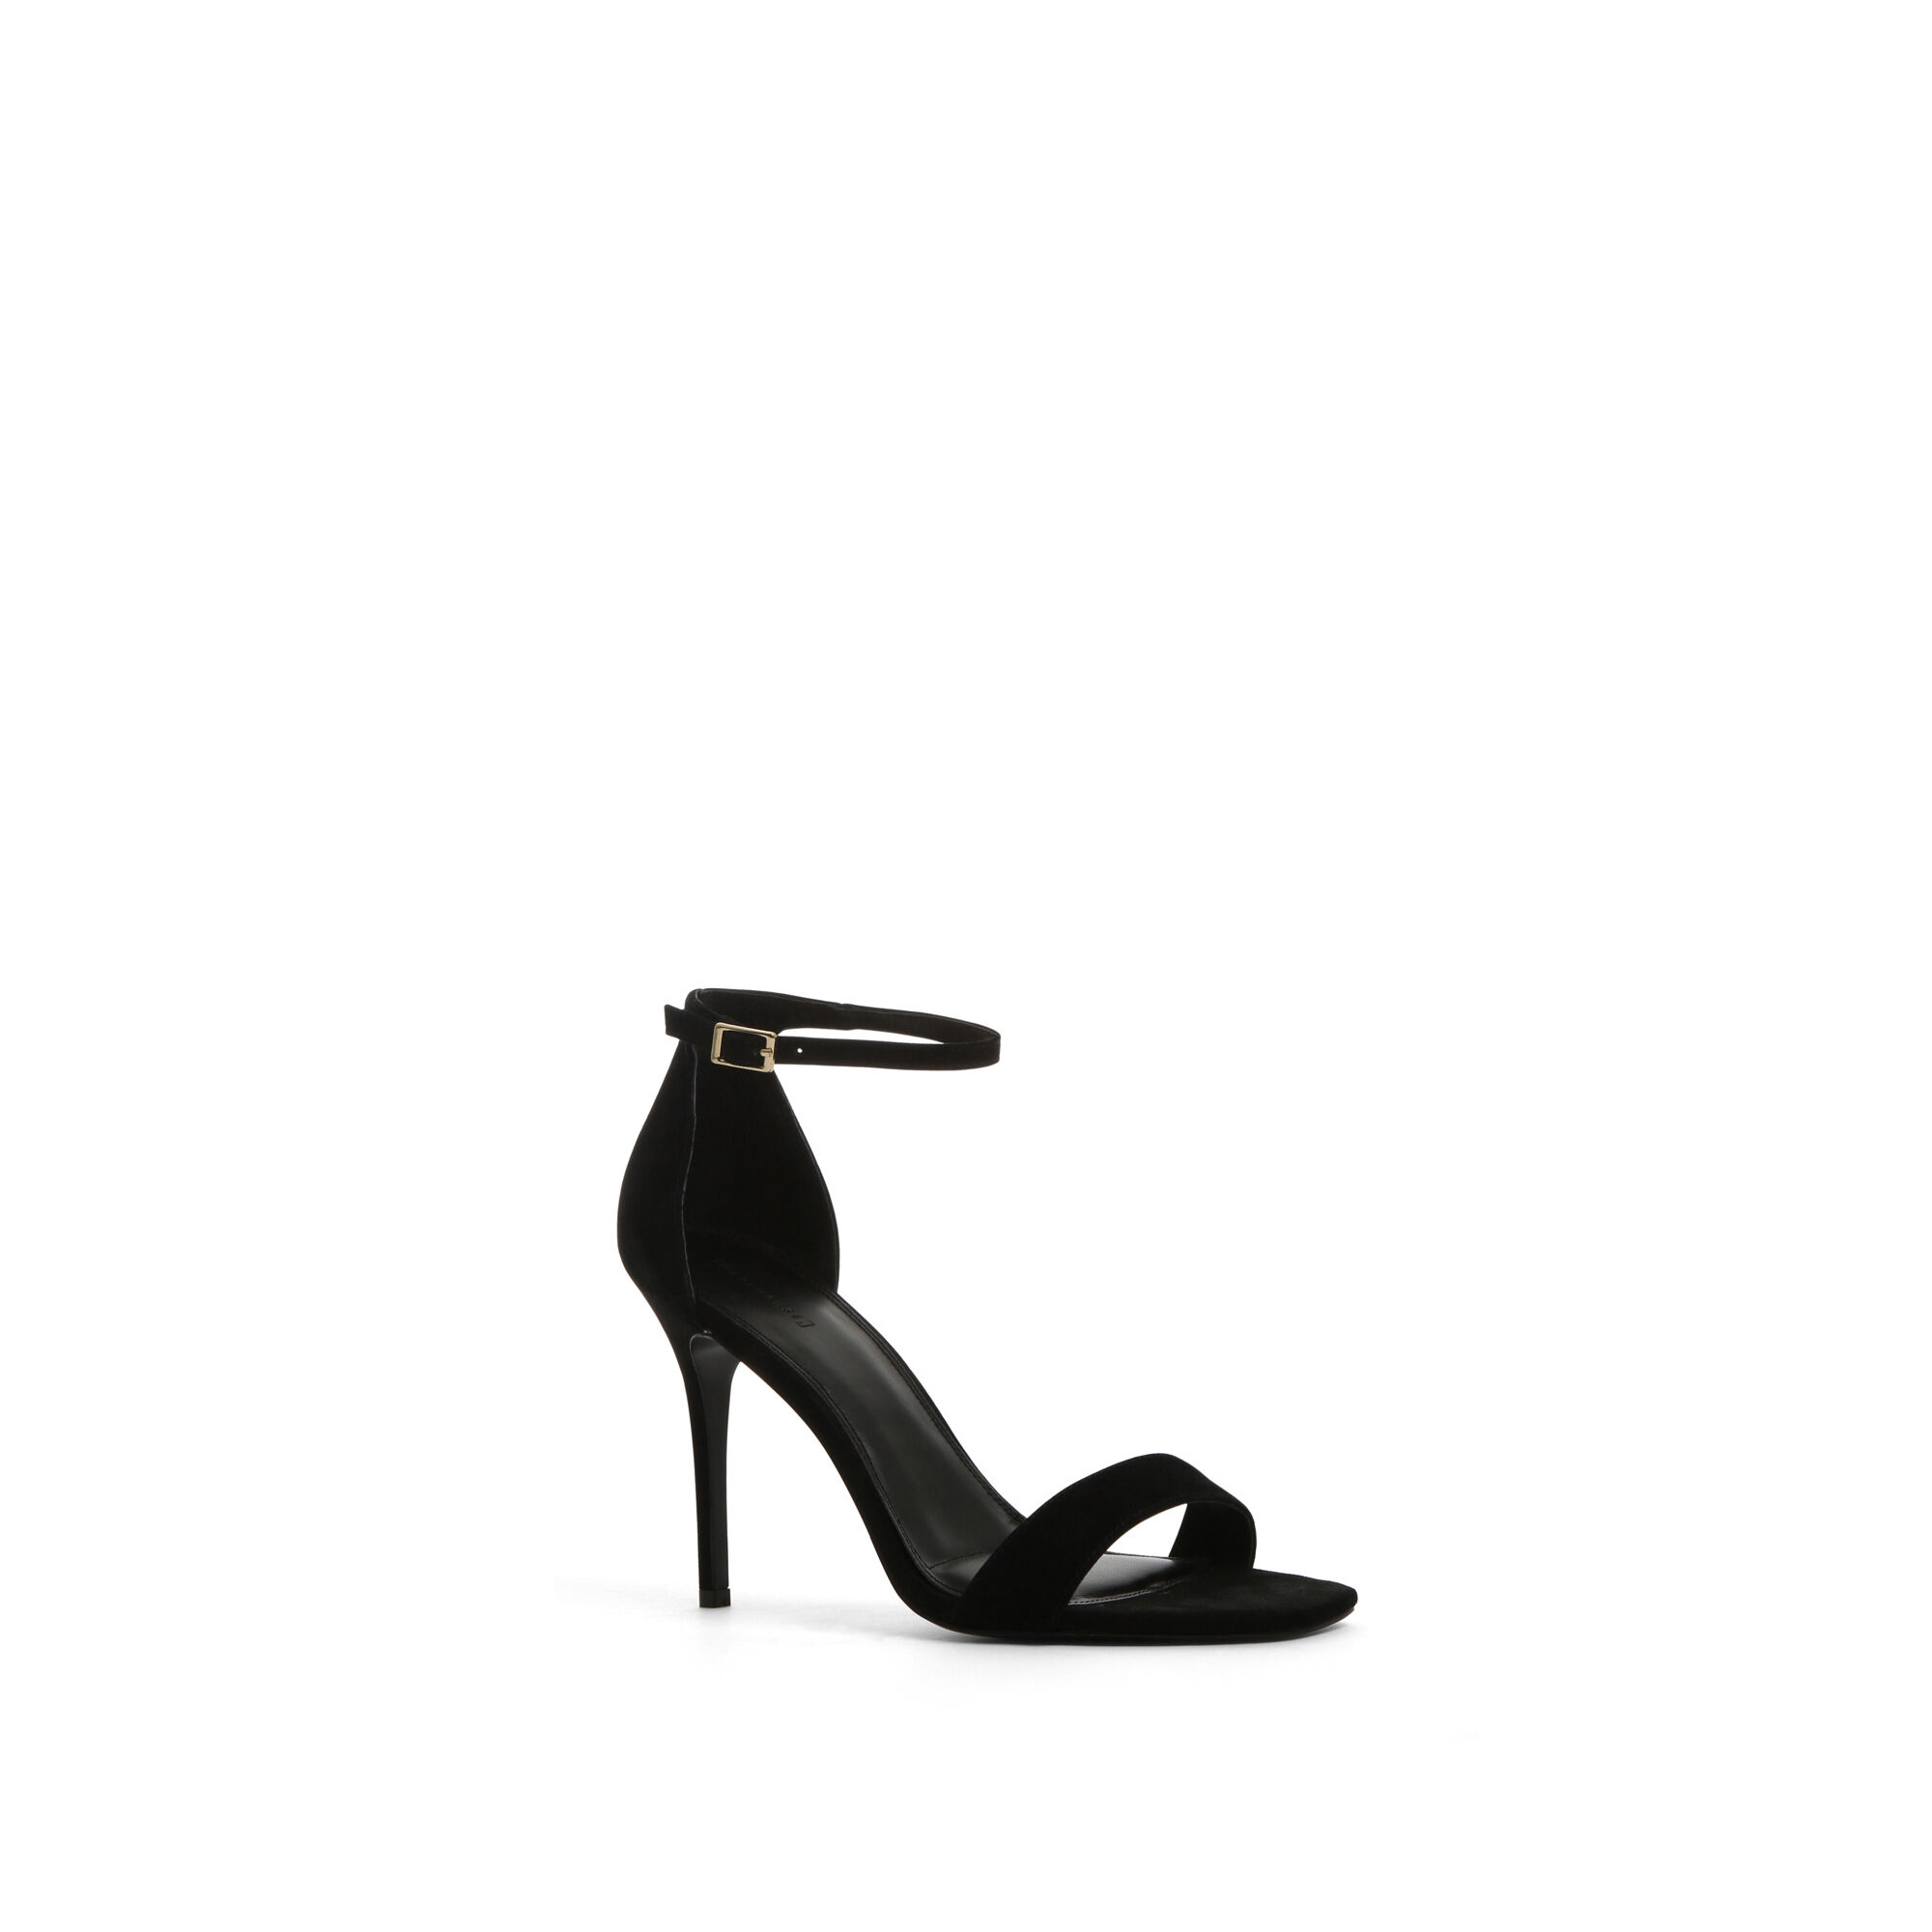 Warehouse, TWO PART HEELED SANDALS Black 1